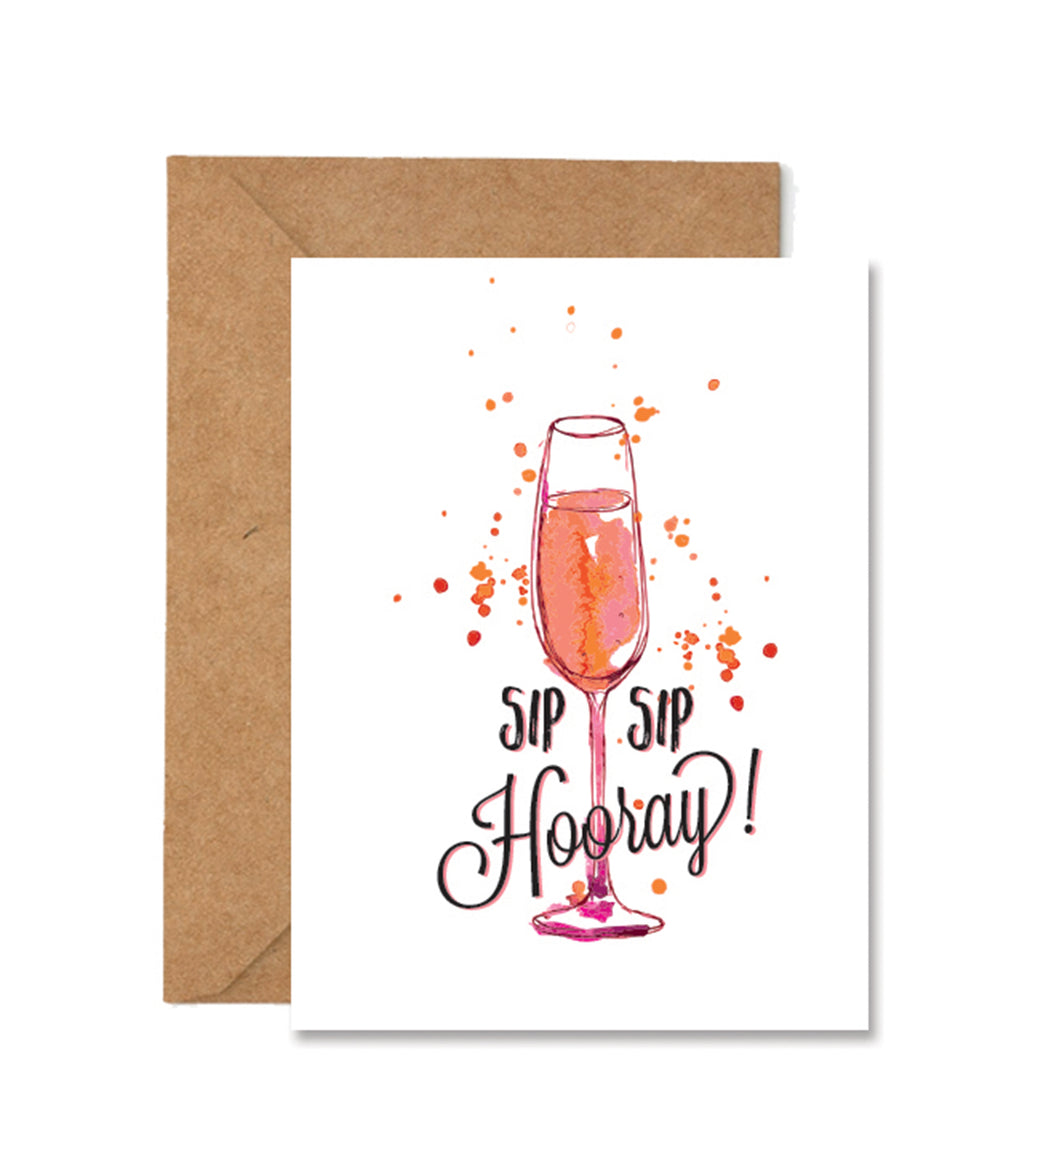 Sip Sip Horray Greeting Card